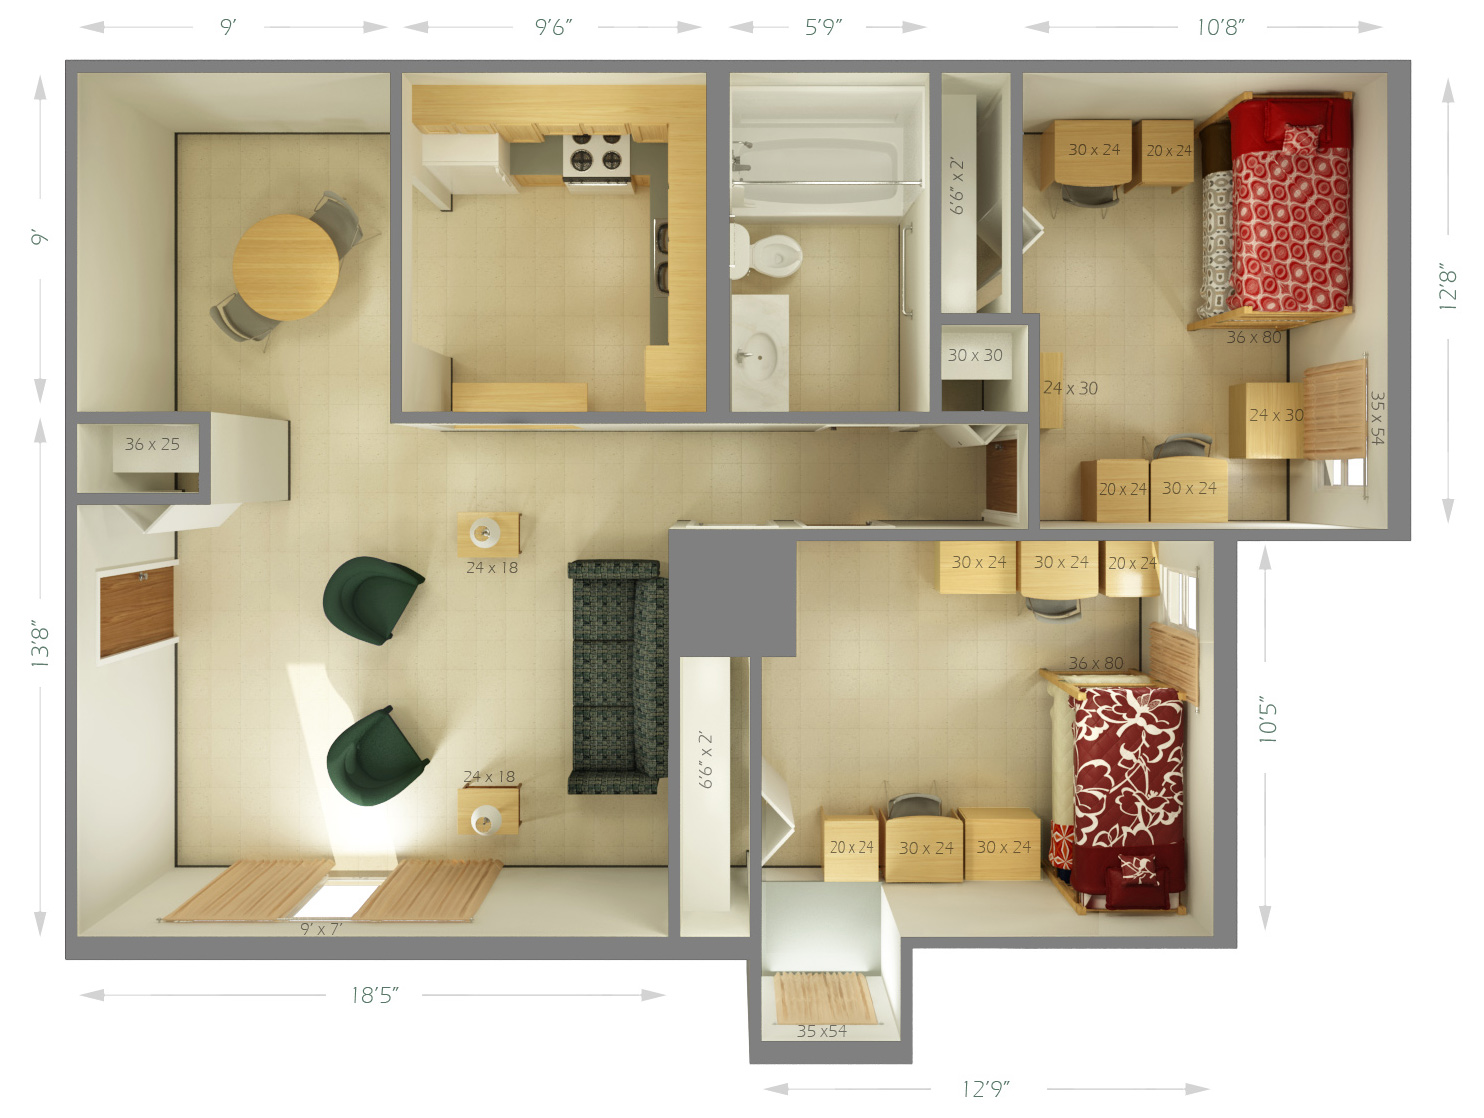 University housing cougar village room dimensions siue for Living room 10 square meters